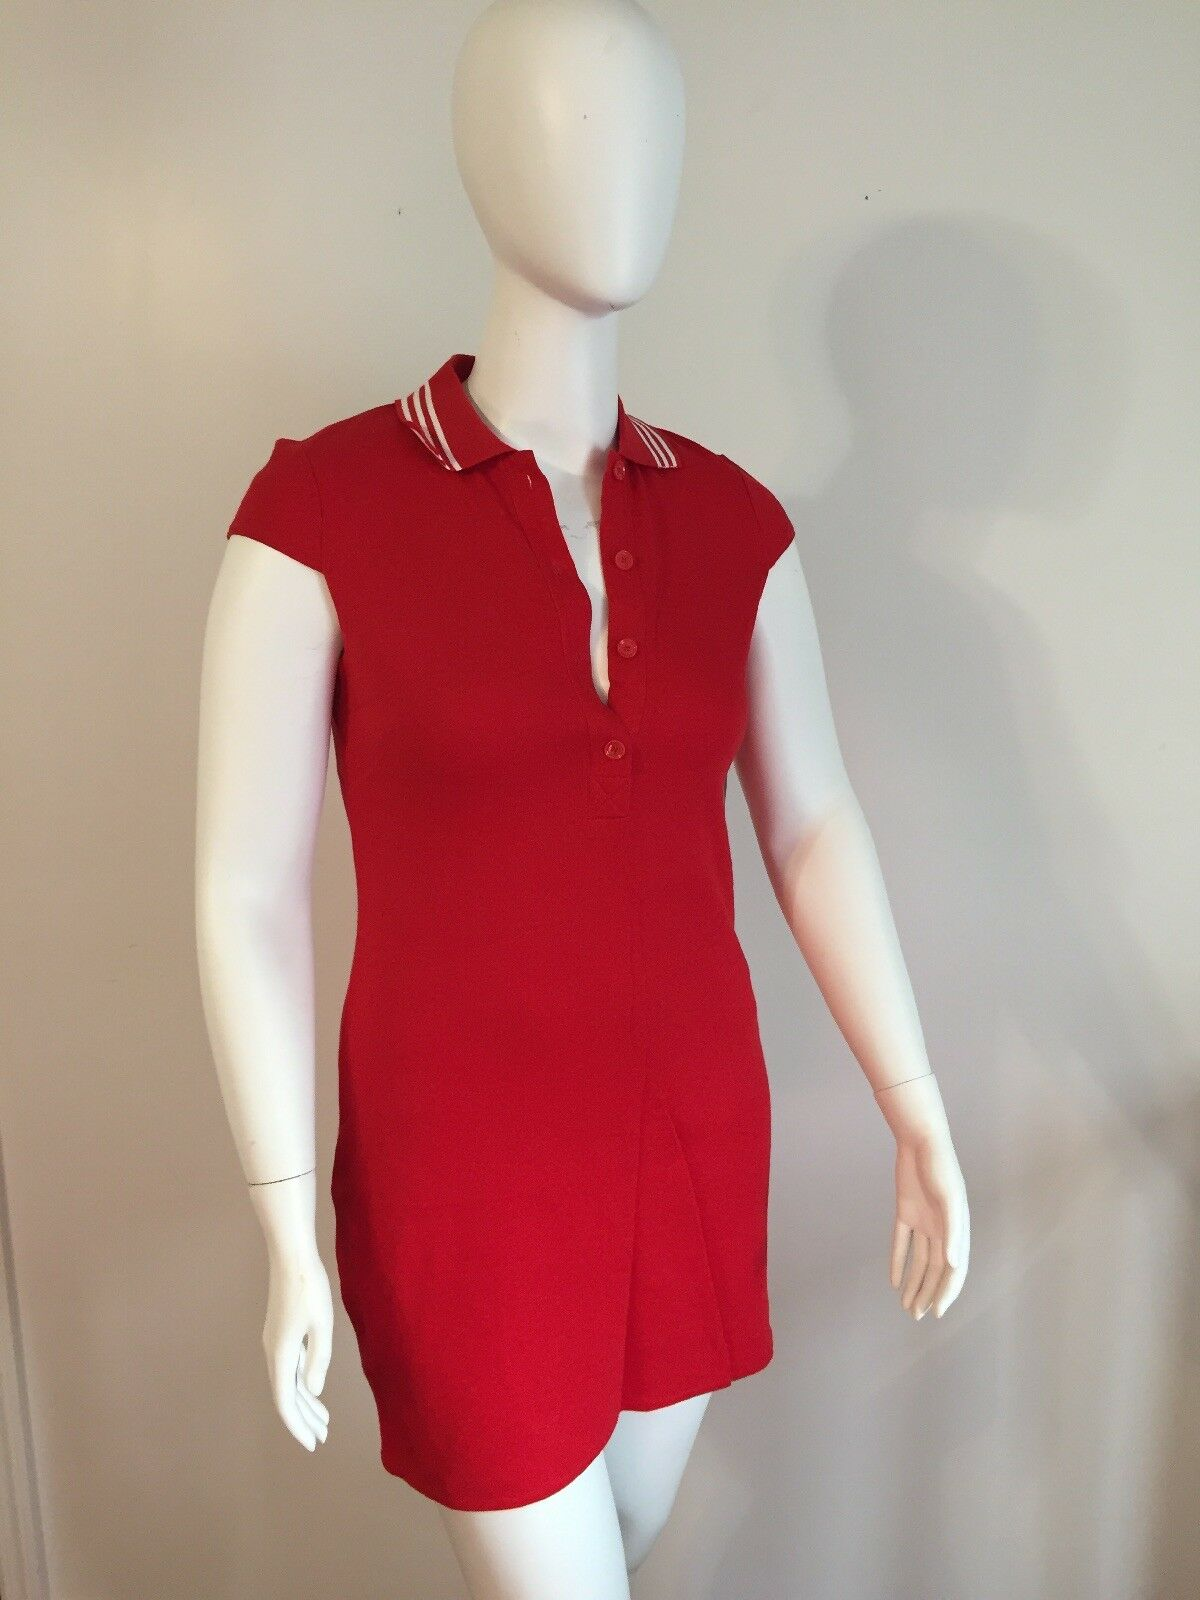 NWT W by WORTH Red Henley Sweatshirt Dress Sz 8